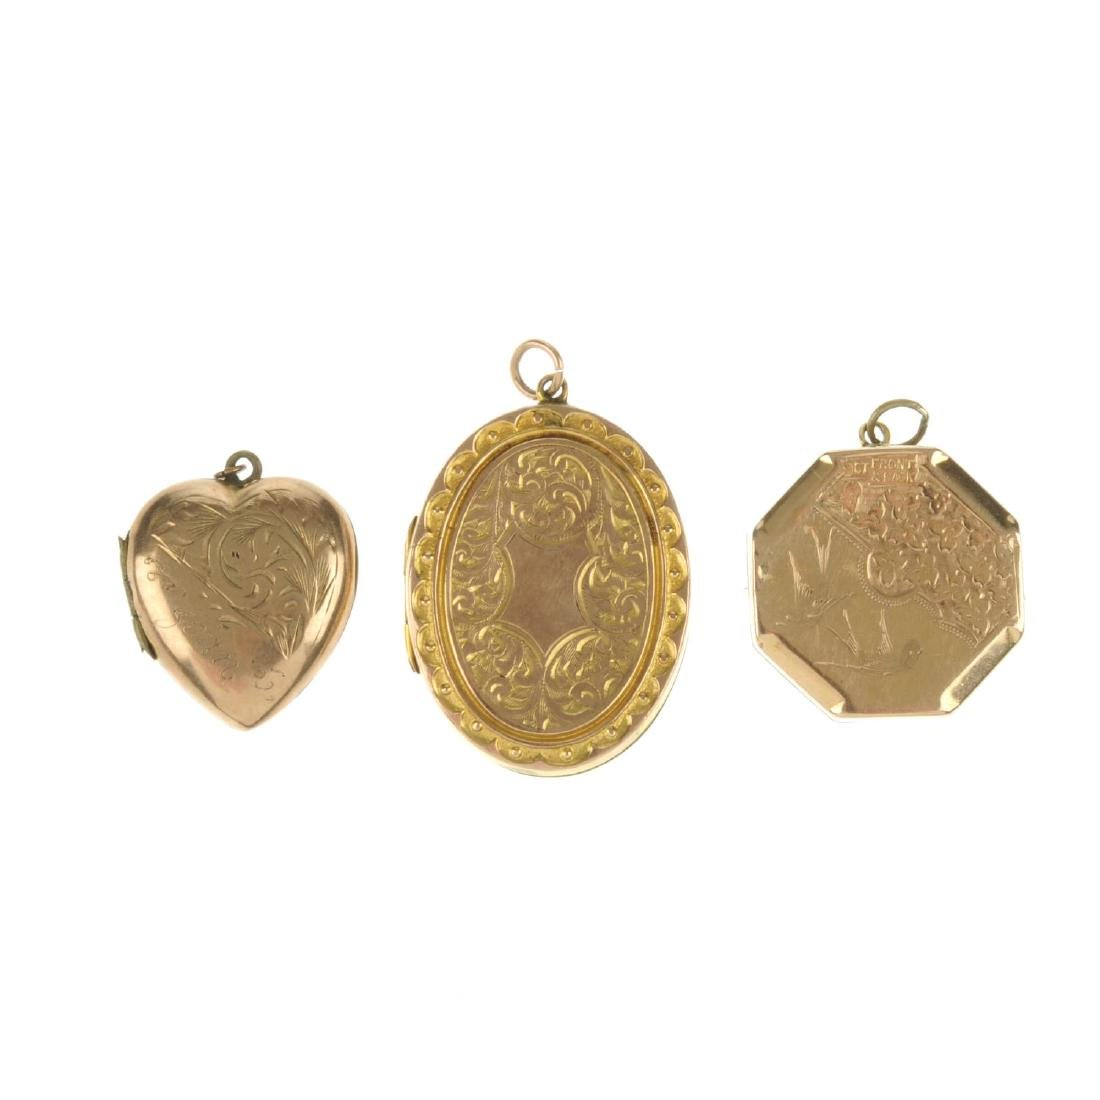 Six 9ct gold front and back lockets. To include an